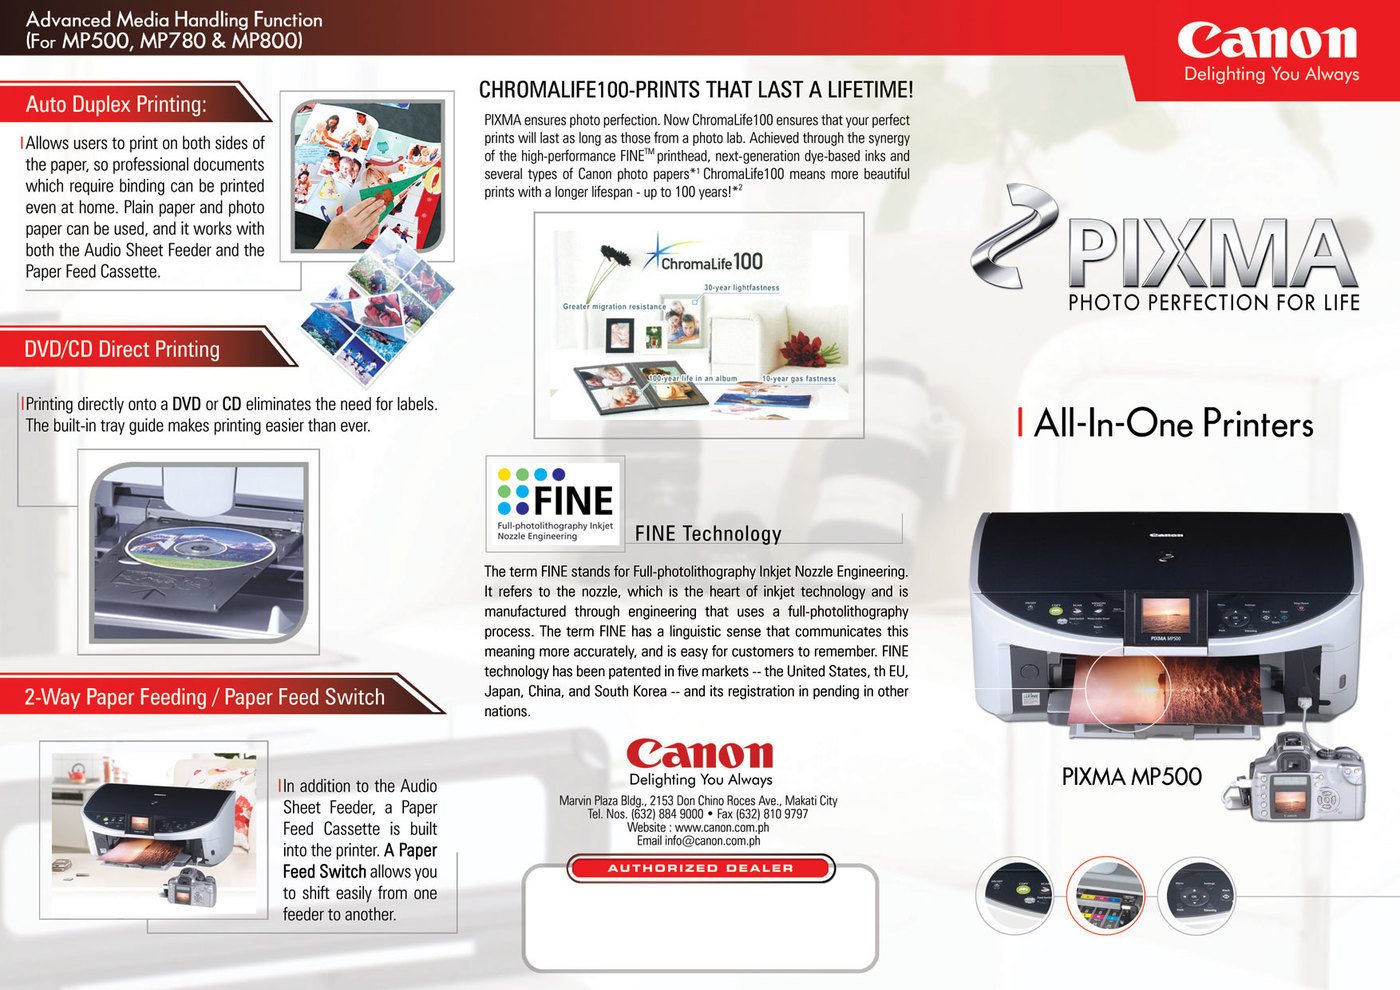 Brochures By Amador Plopenio Jr At 2 Way Switch Feed Canon Al In One Printers Fa